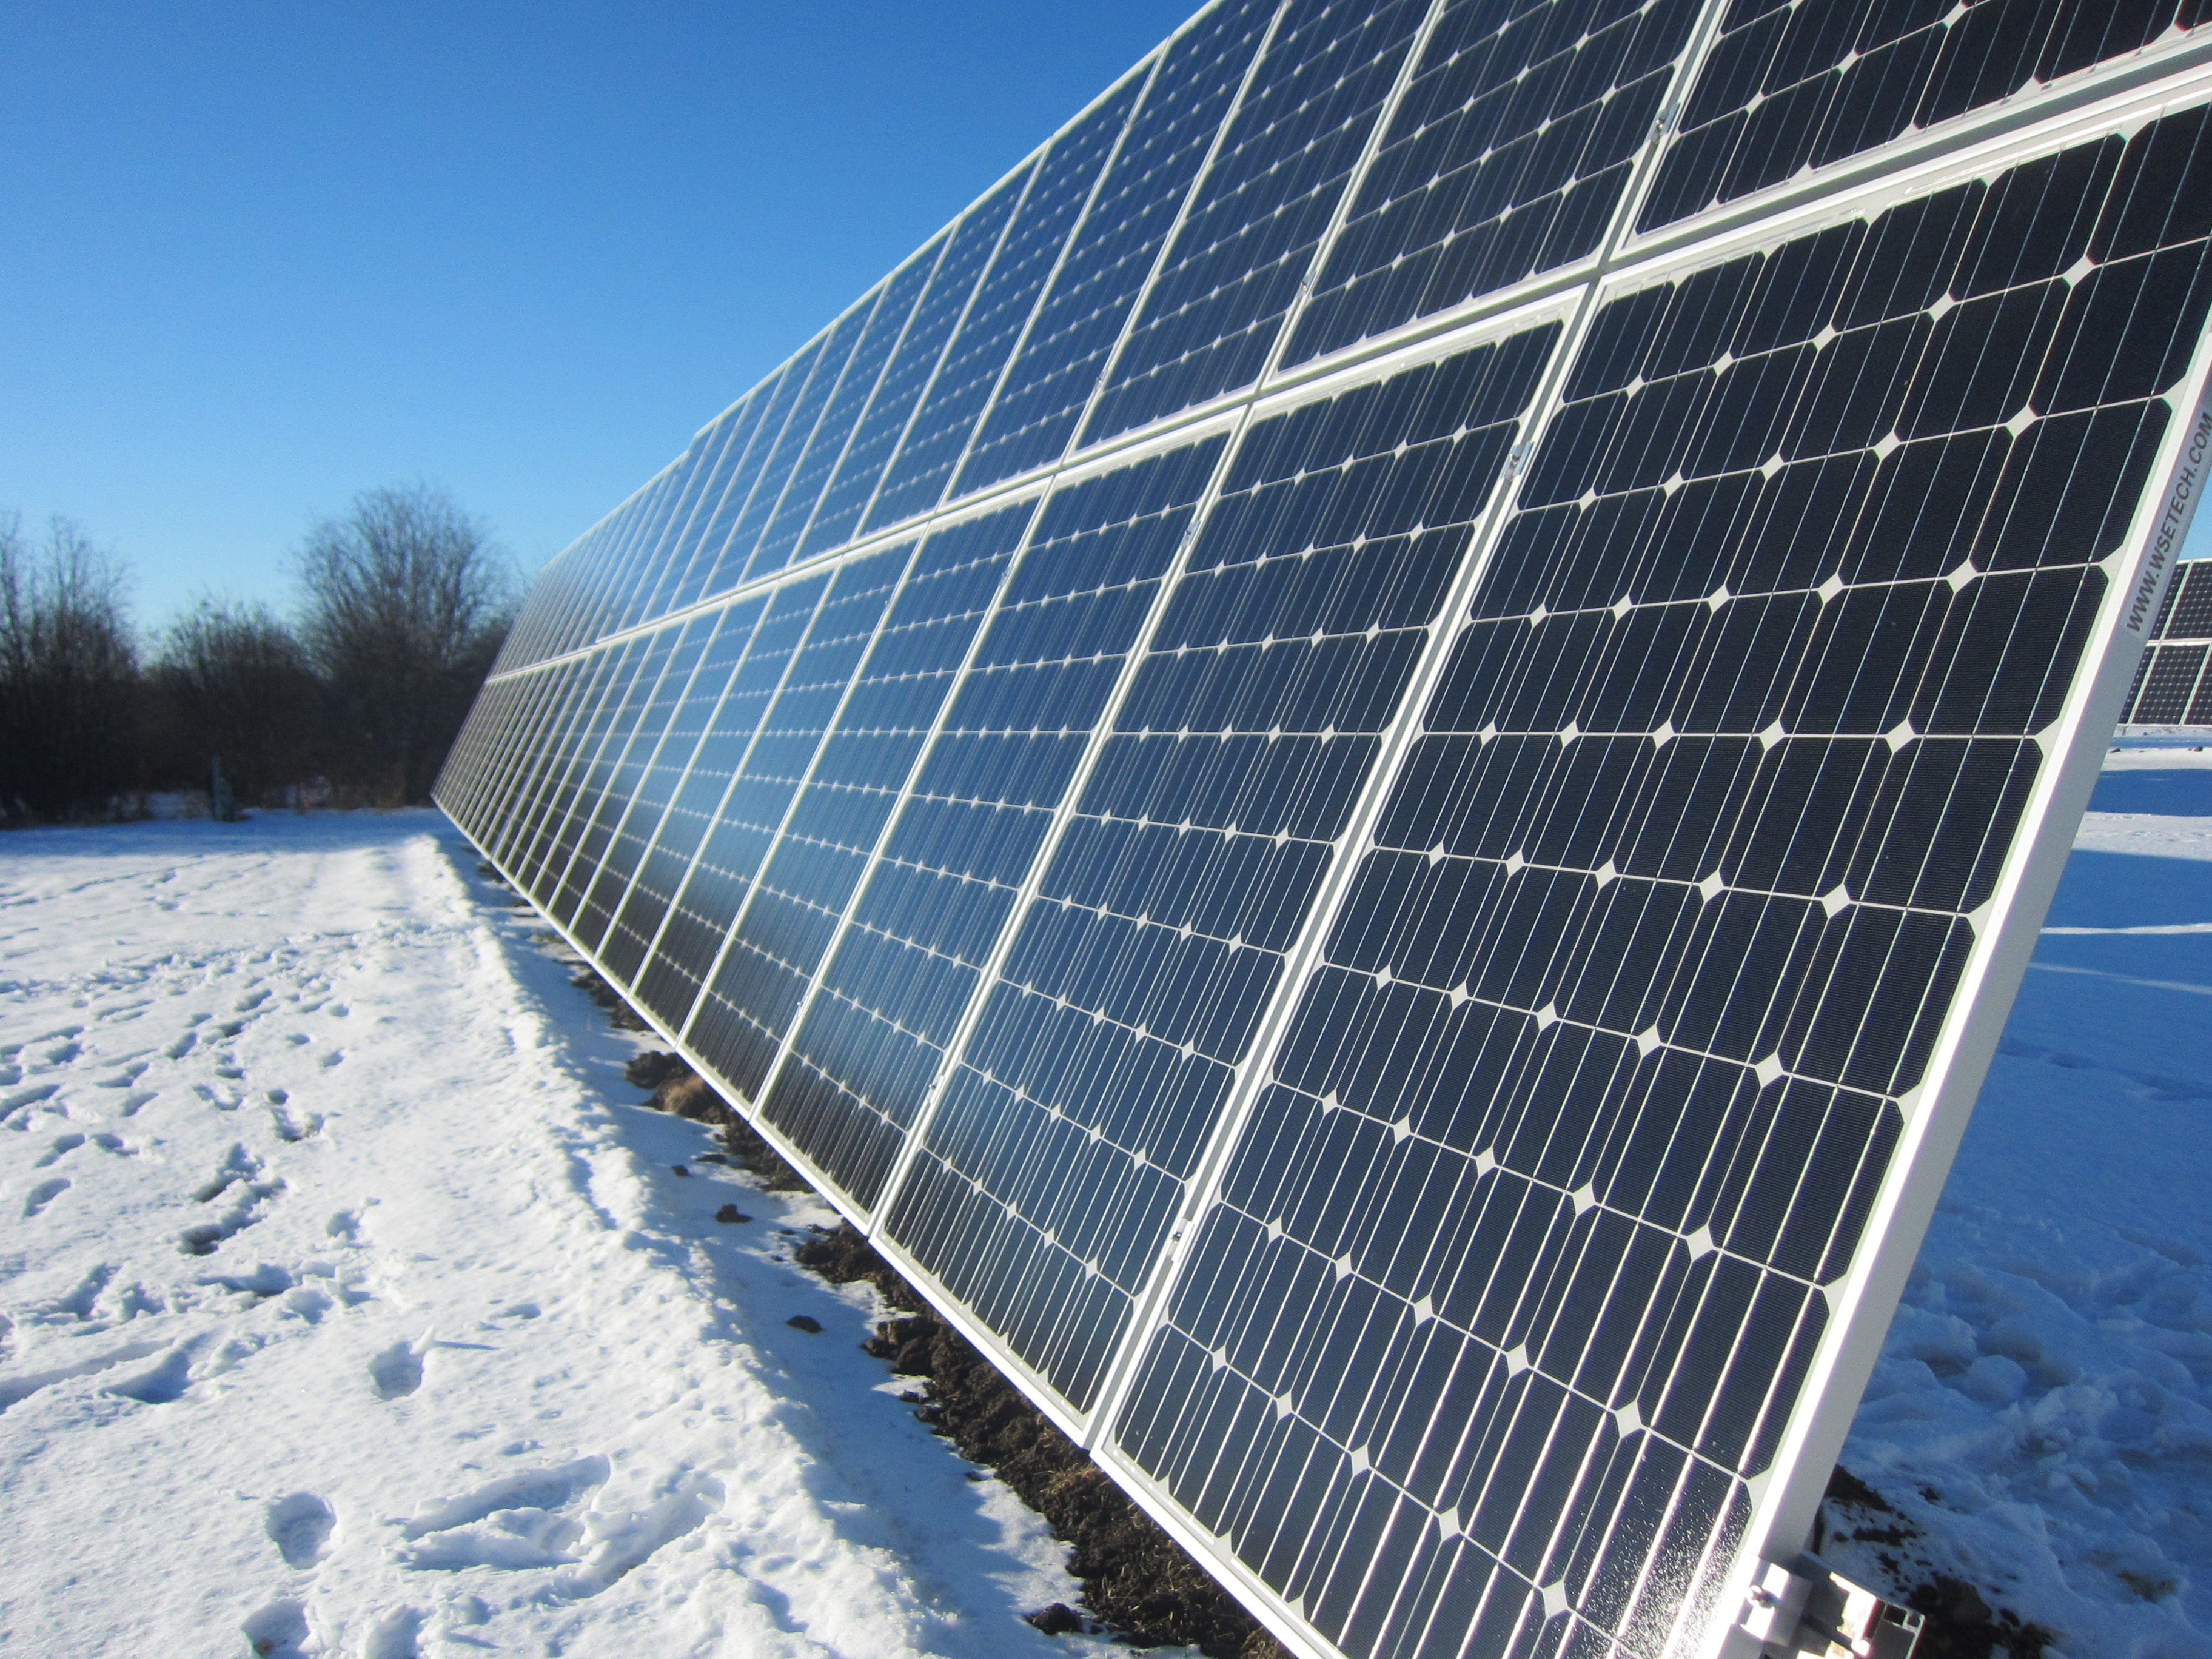 Students Get Sunny With SOLAR at U of S